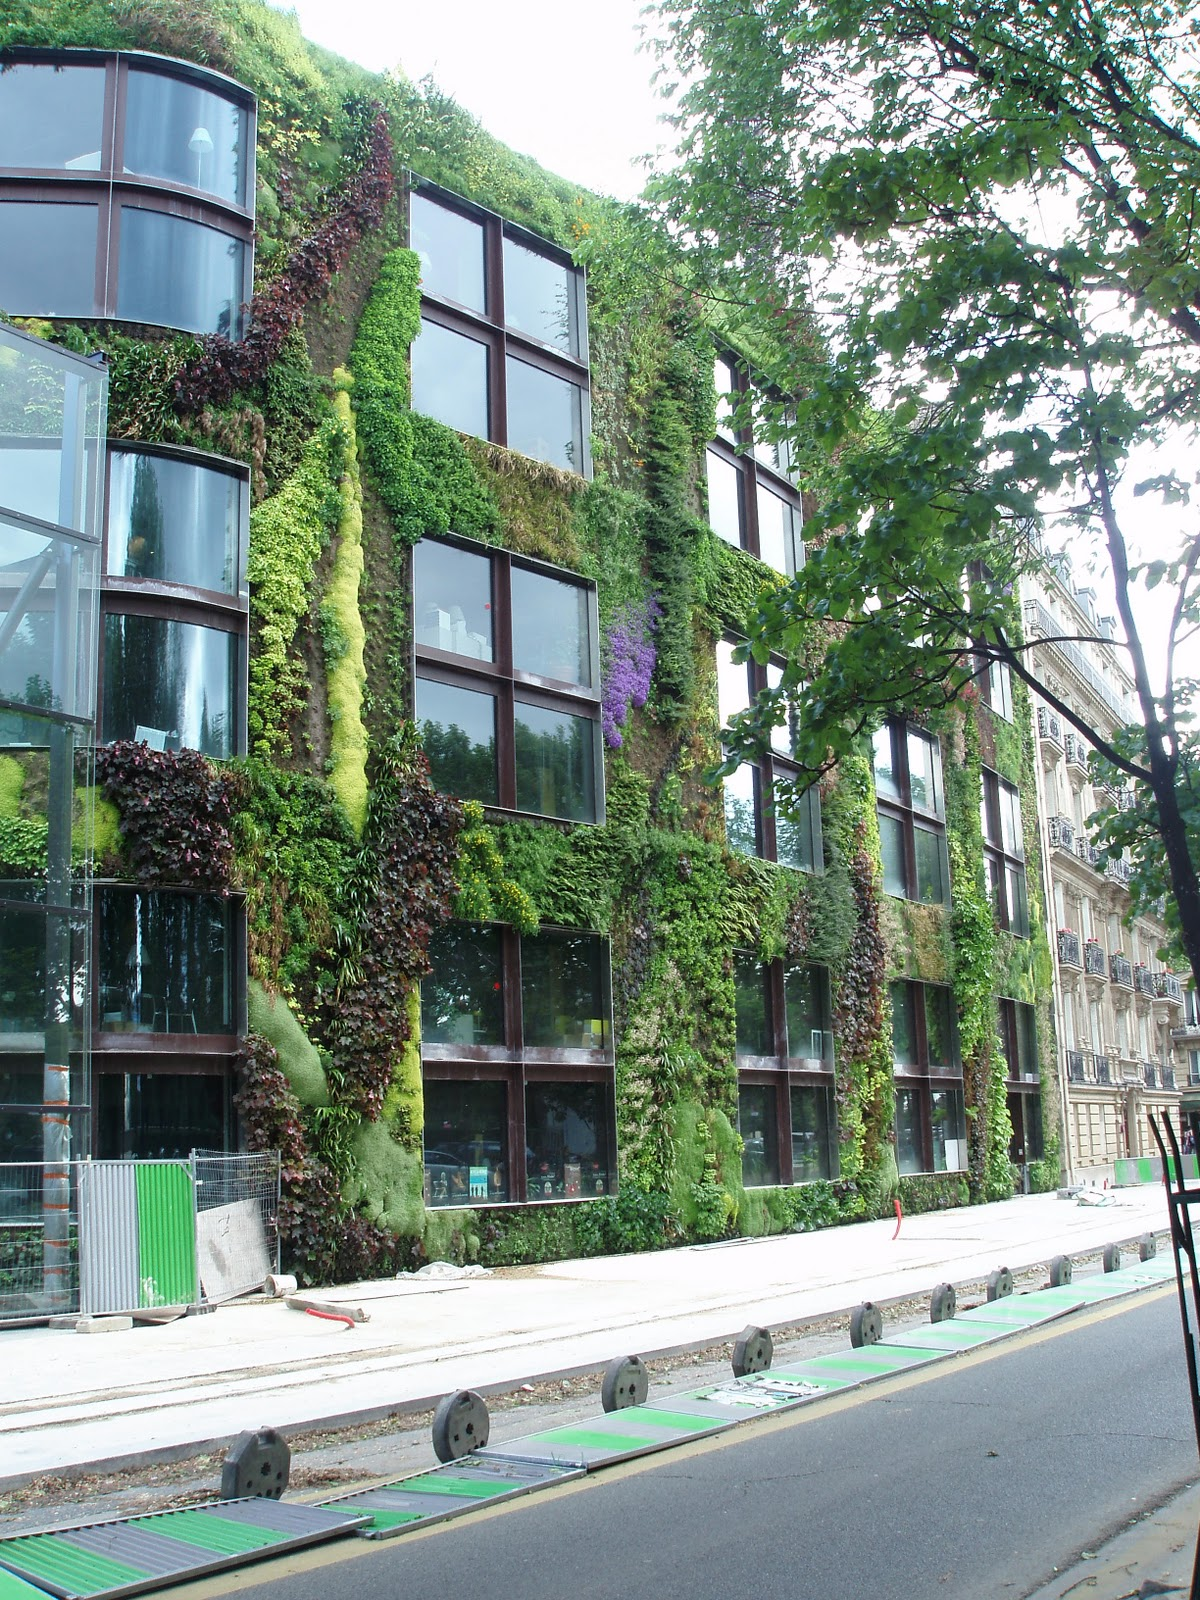 The Vertical Garden On The Wall Of The Musée Des Arts Premiers Quai Branly  In Paris.